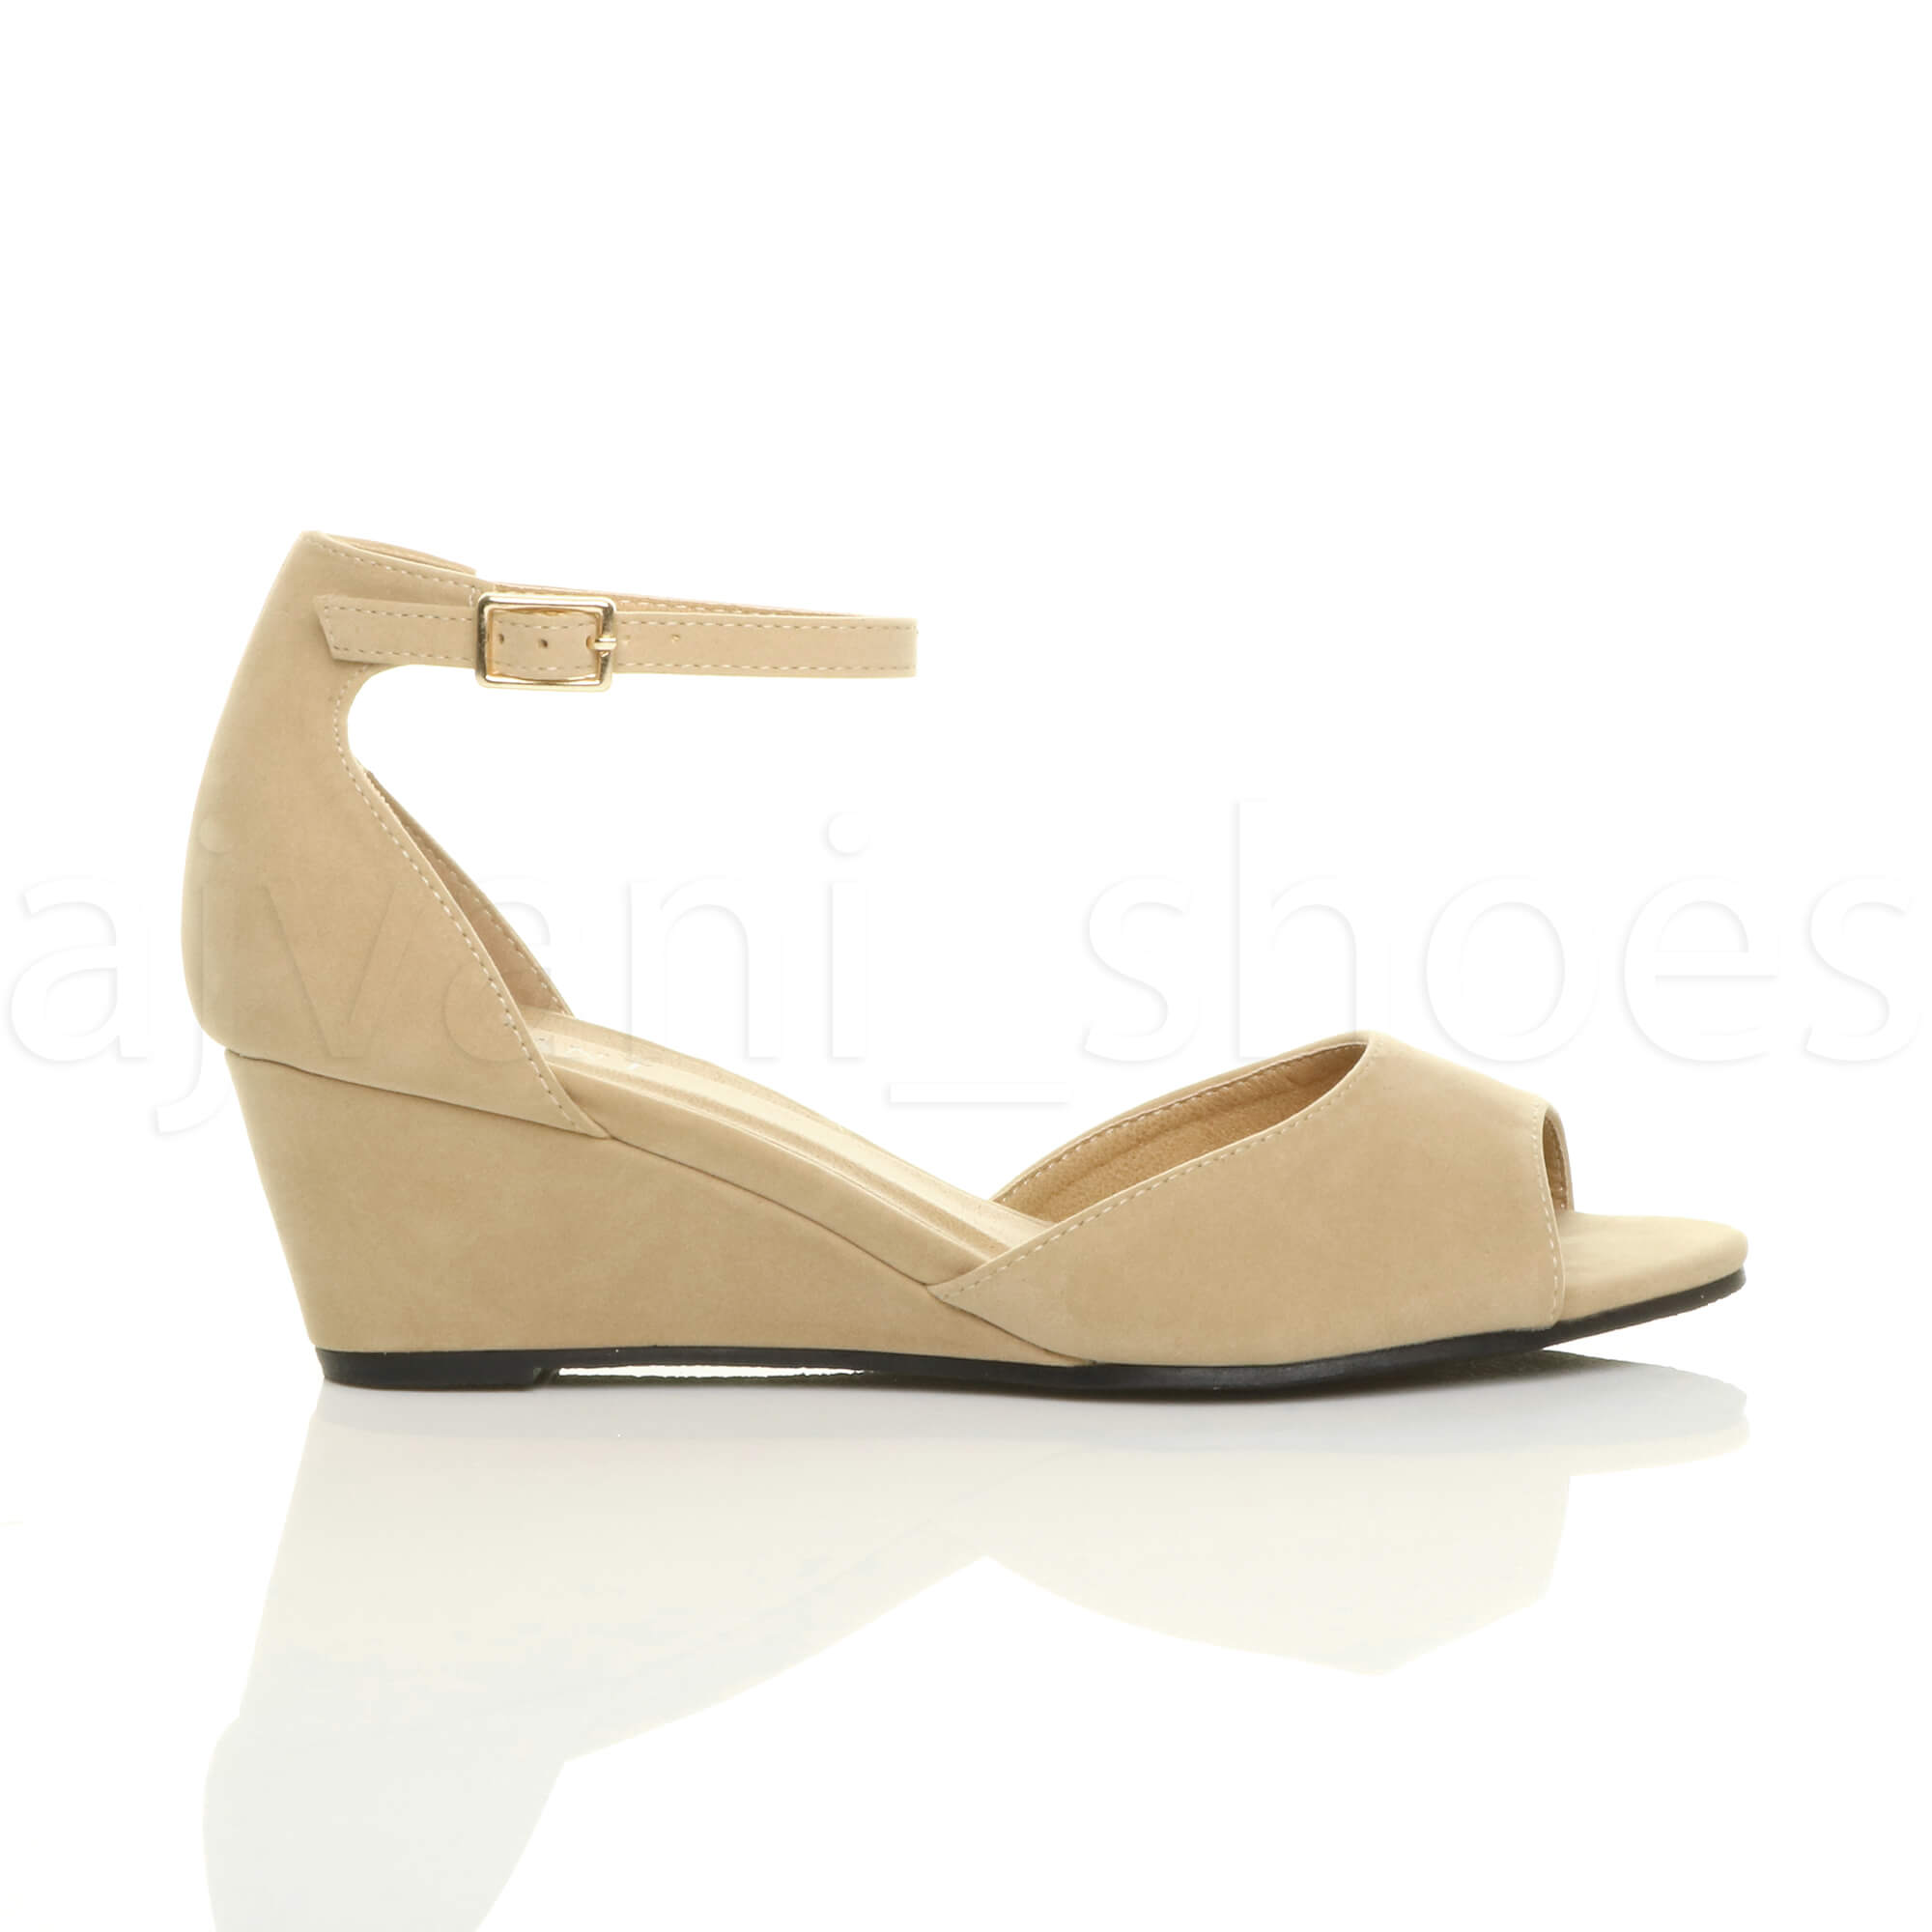 WOMENS-LADIES-LOW-MID-WEDGE-HEEL-ANKLE-STRAP-SMART-CASUAL-EVENING-SANDALS-SIZE thumbnail 107